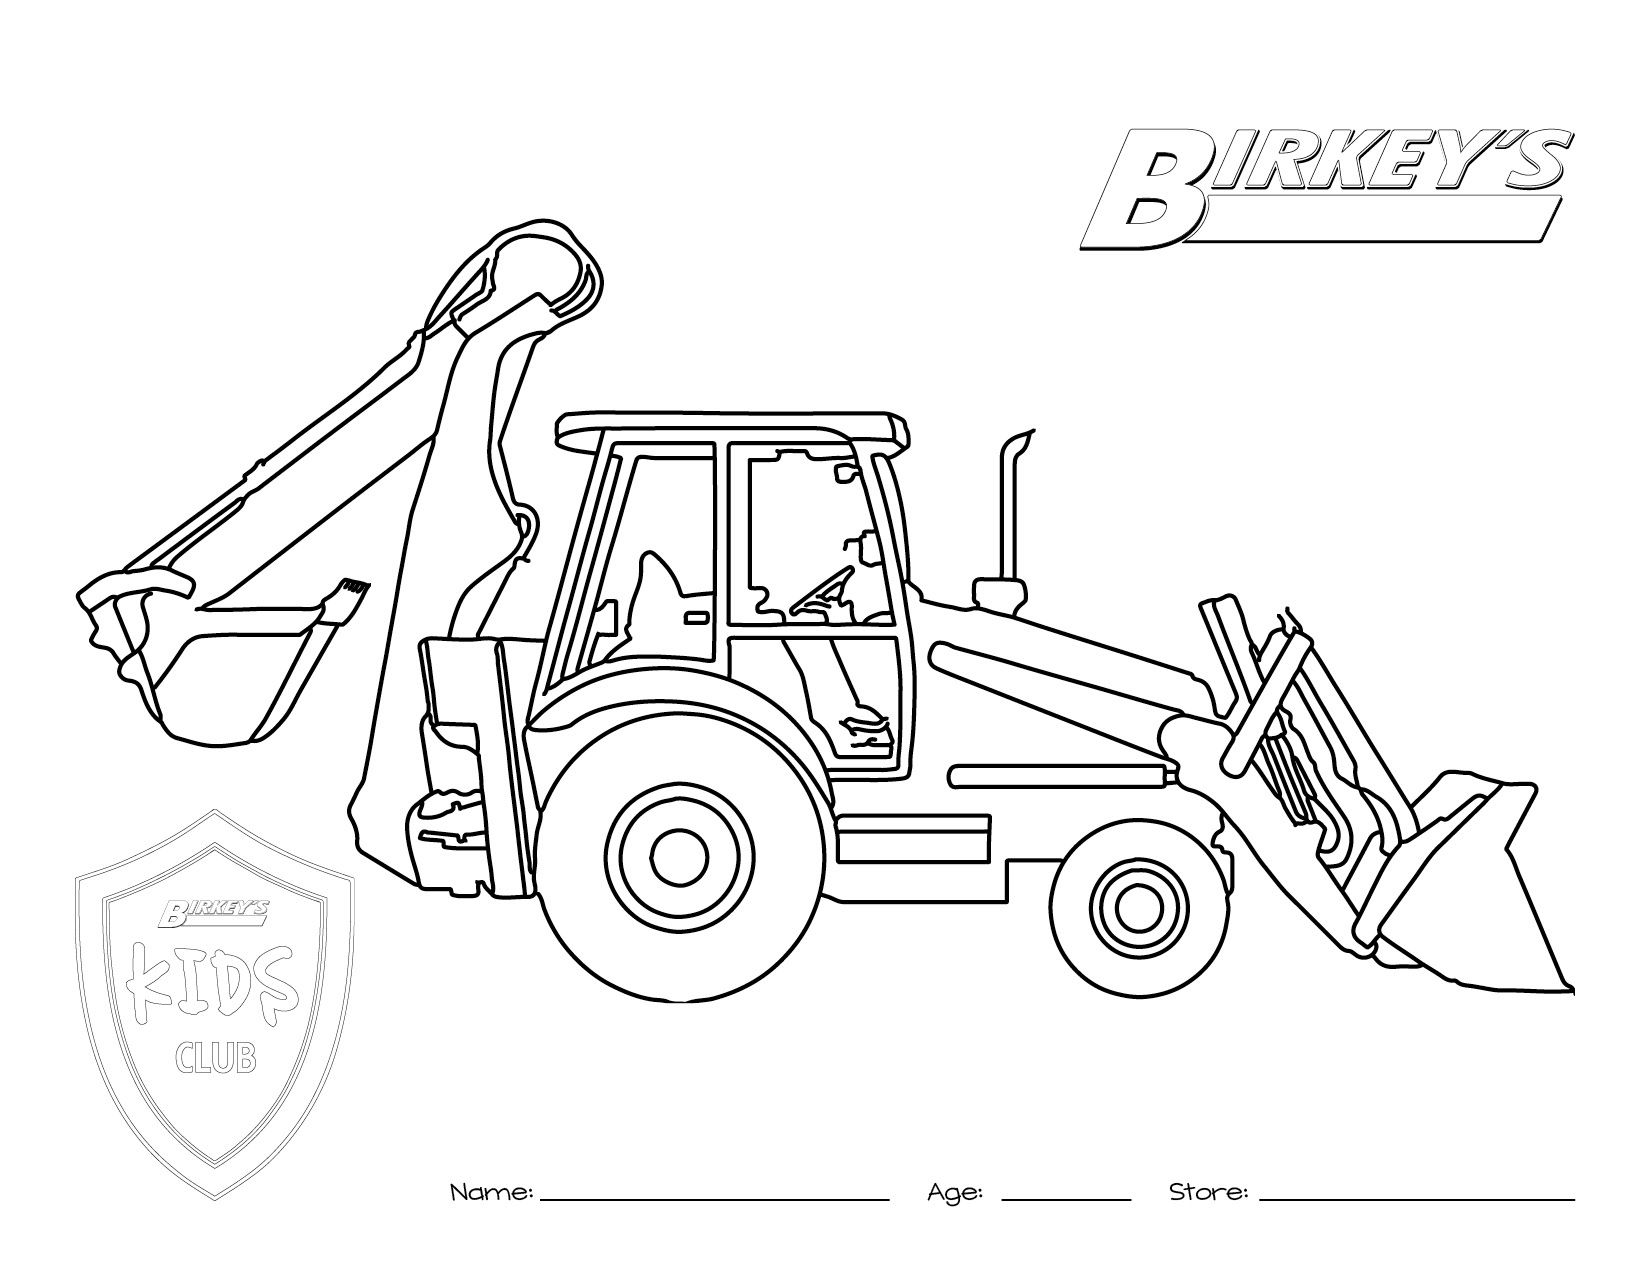 Tractor Backhoe Coloring Page  Tractor coloring pages, Truck